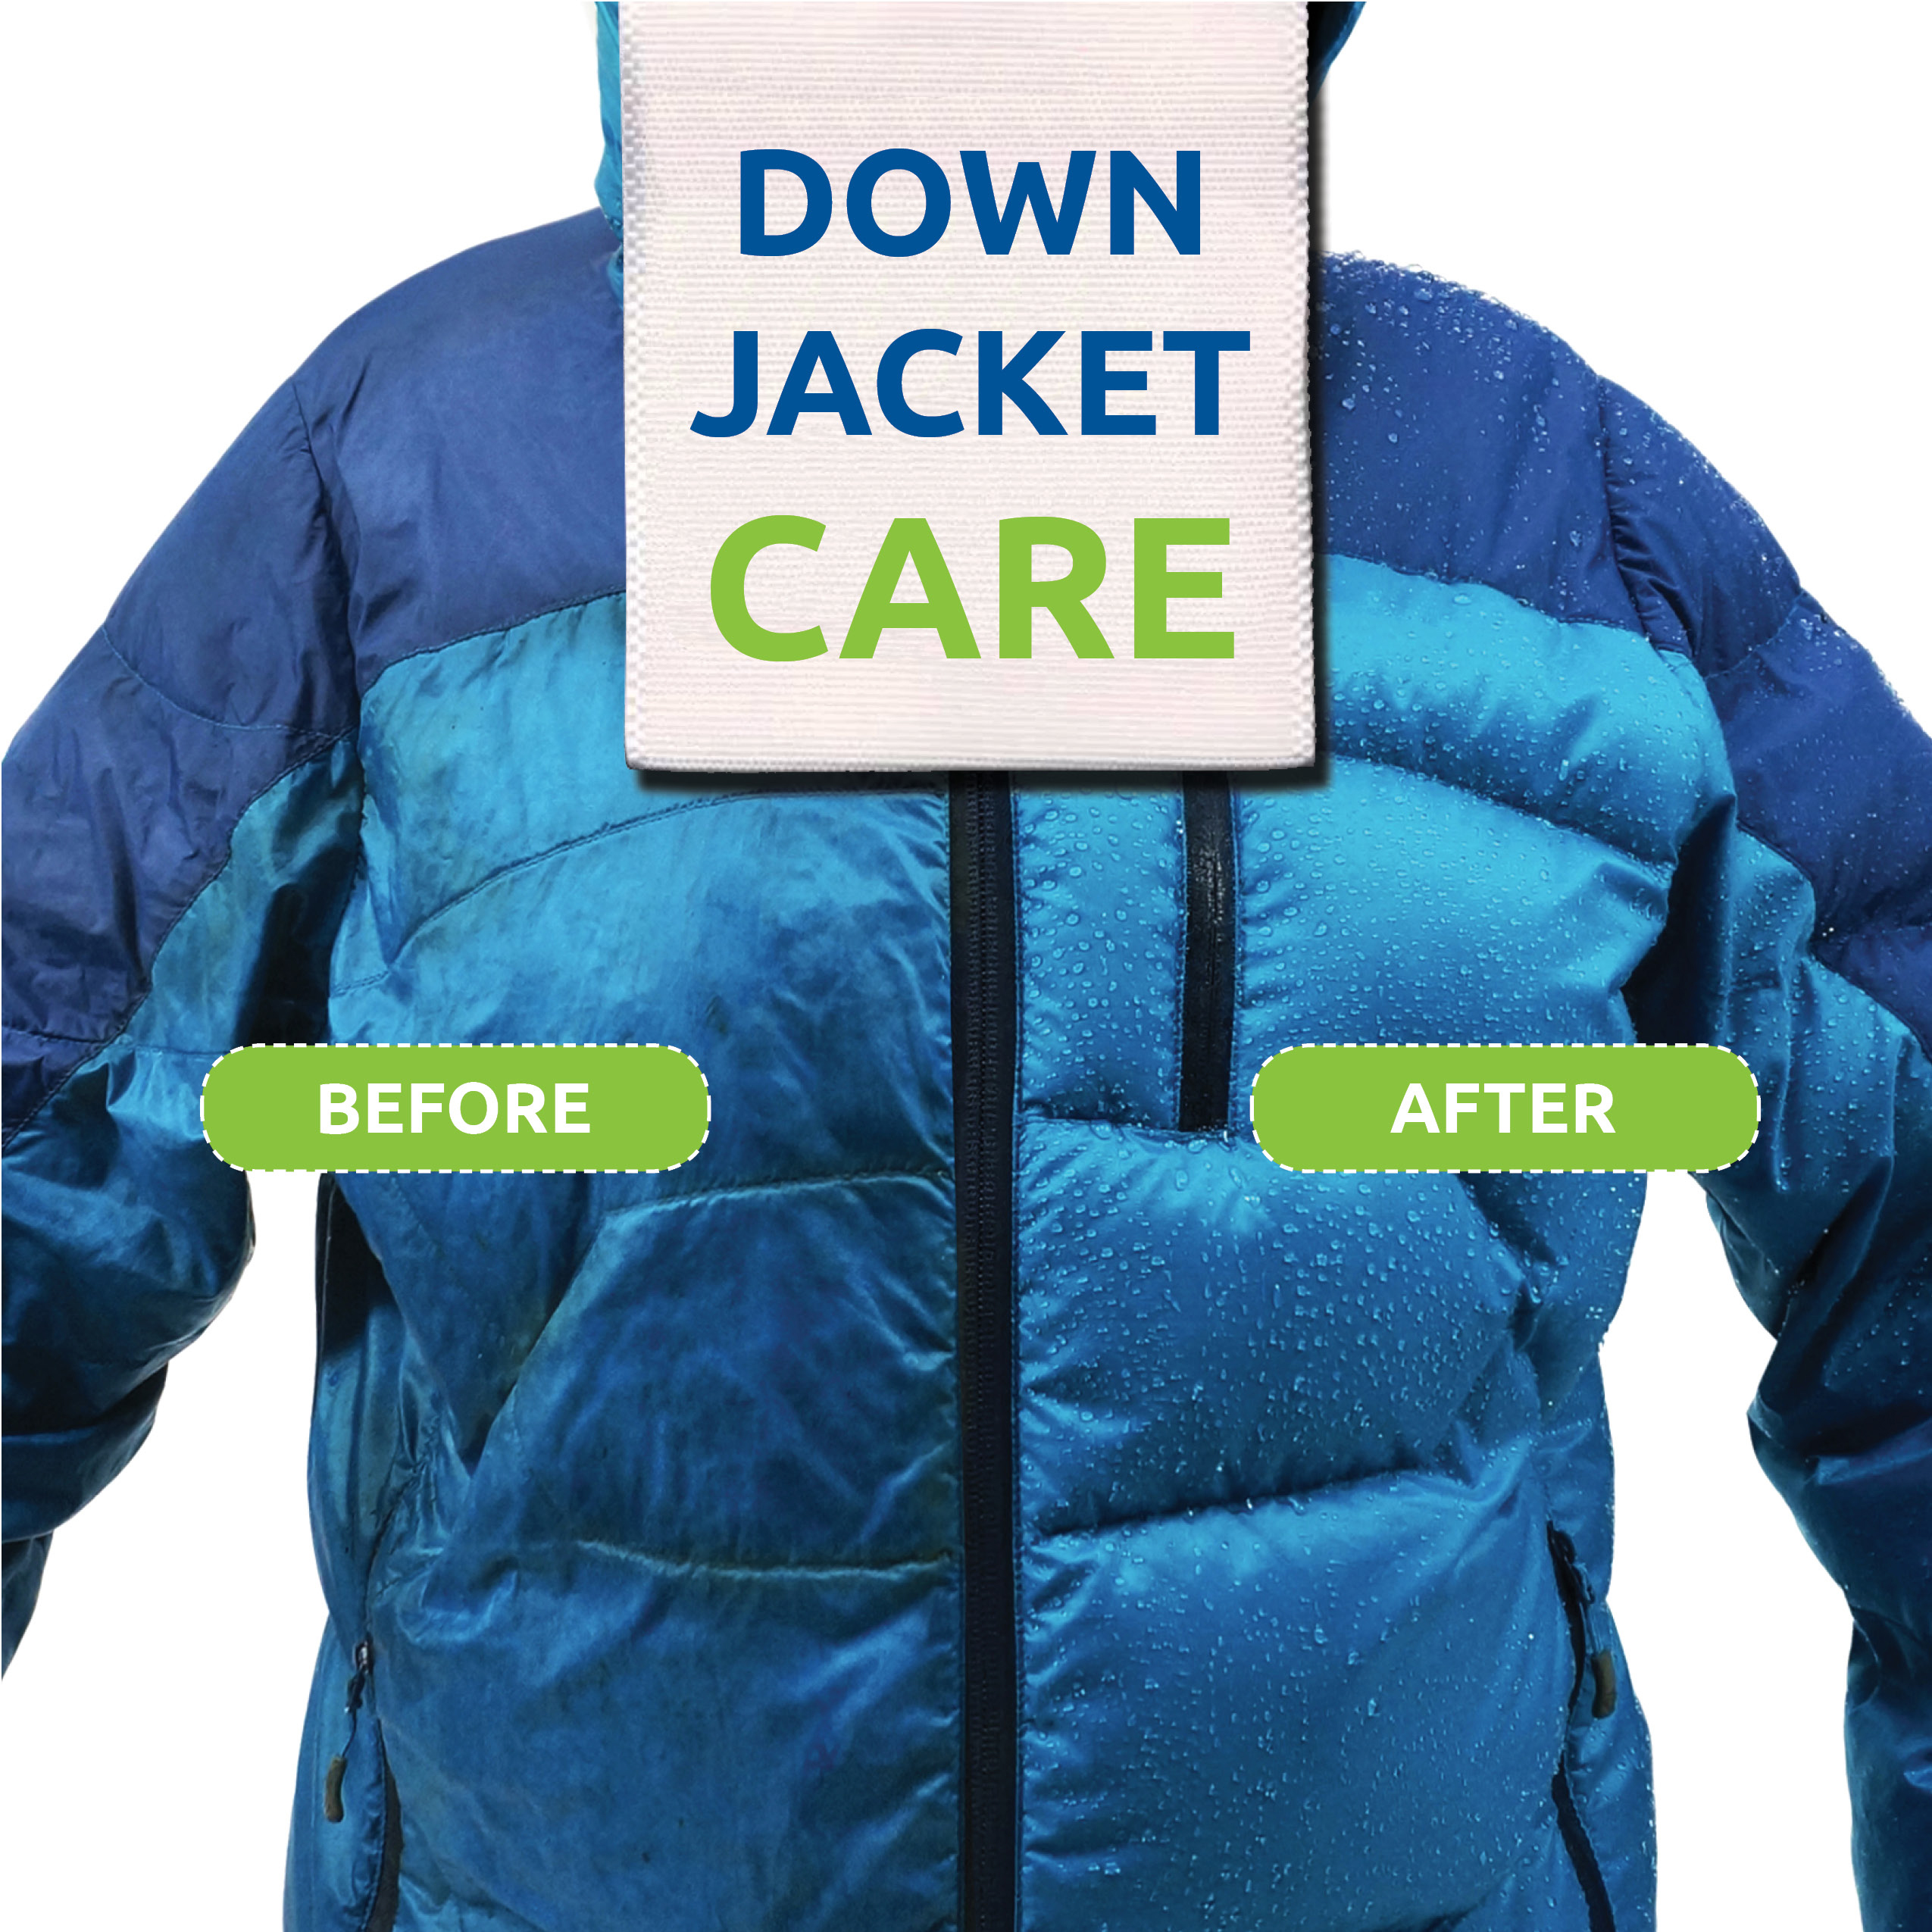 2ee124379e Purchasing a down jacket is rite of passage for us outdoor types. It s the  quintessential uniform for all mountain towns